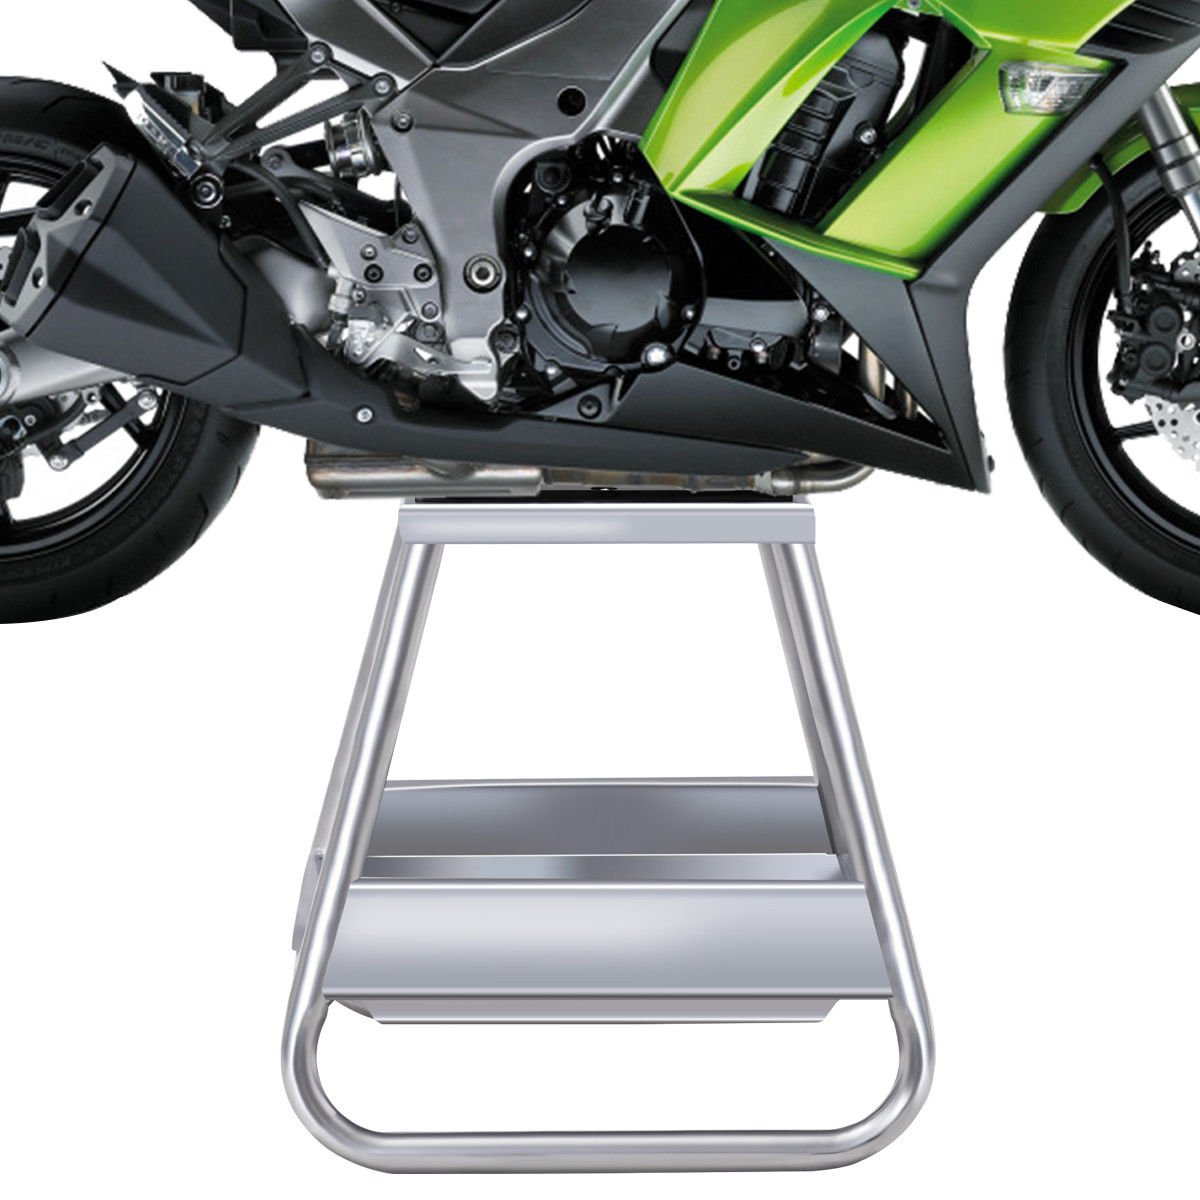 Goplus Motorcycle Motocross Dirt Bike Panel Stand Hoist Maintenance Lift Jack 1000LB Capacity (with Removable Oil Pan) by Goplus (Image #4)